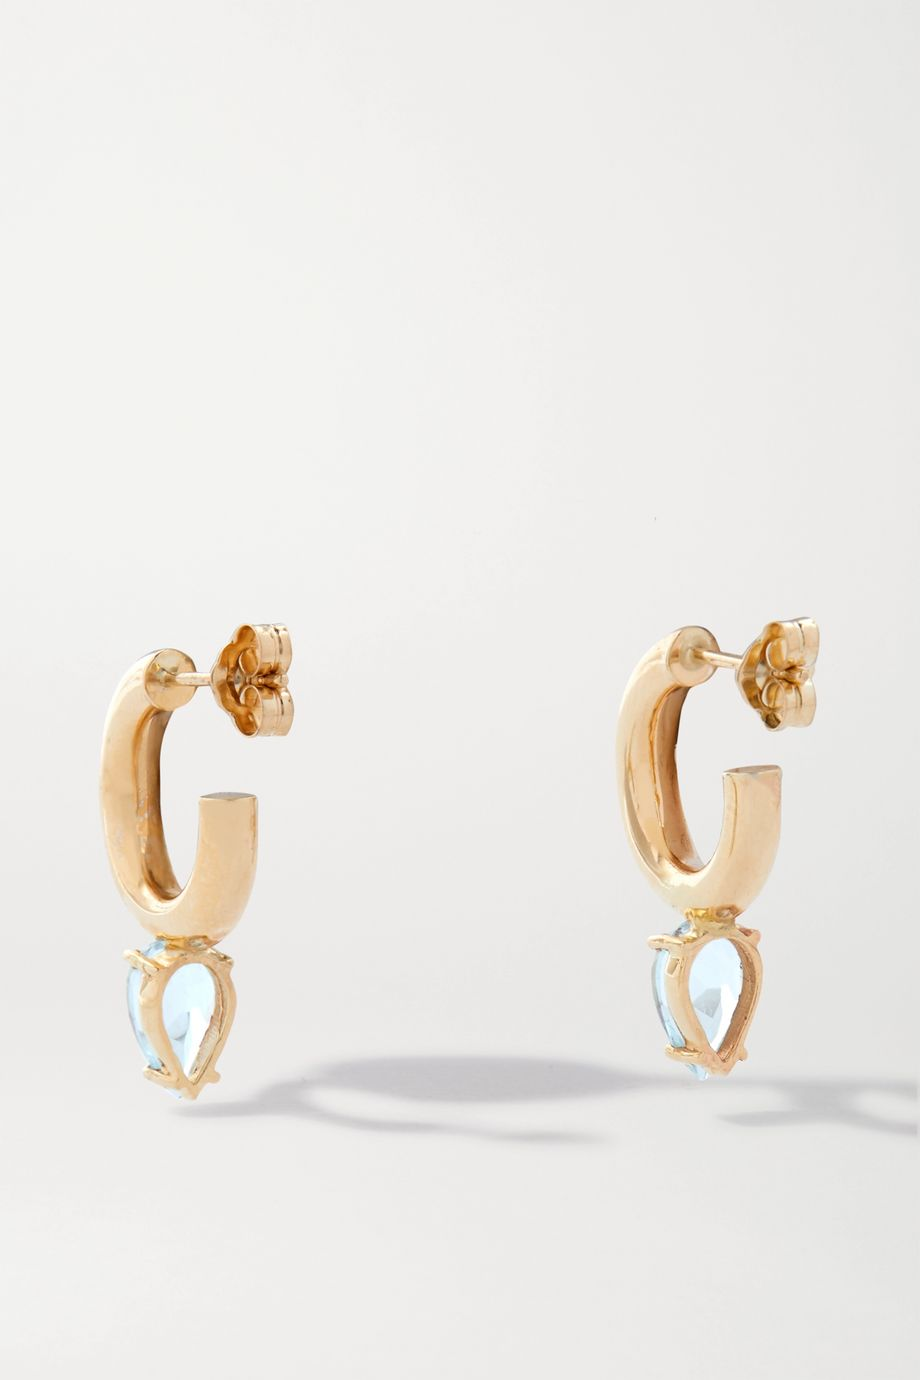 Loren Stewart Fantasia gold topaz hoop earrings